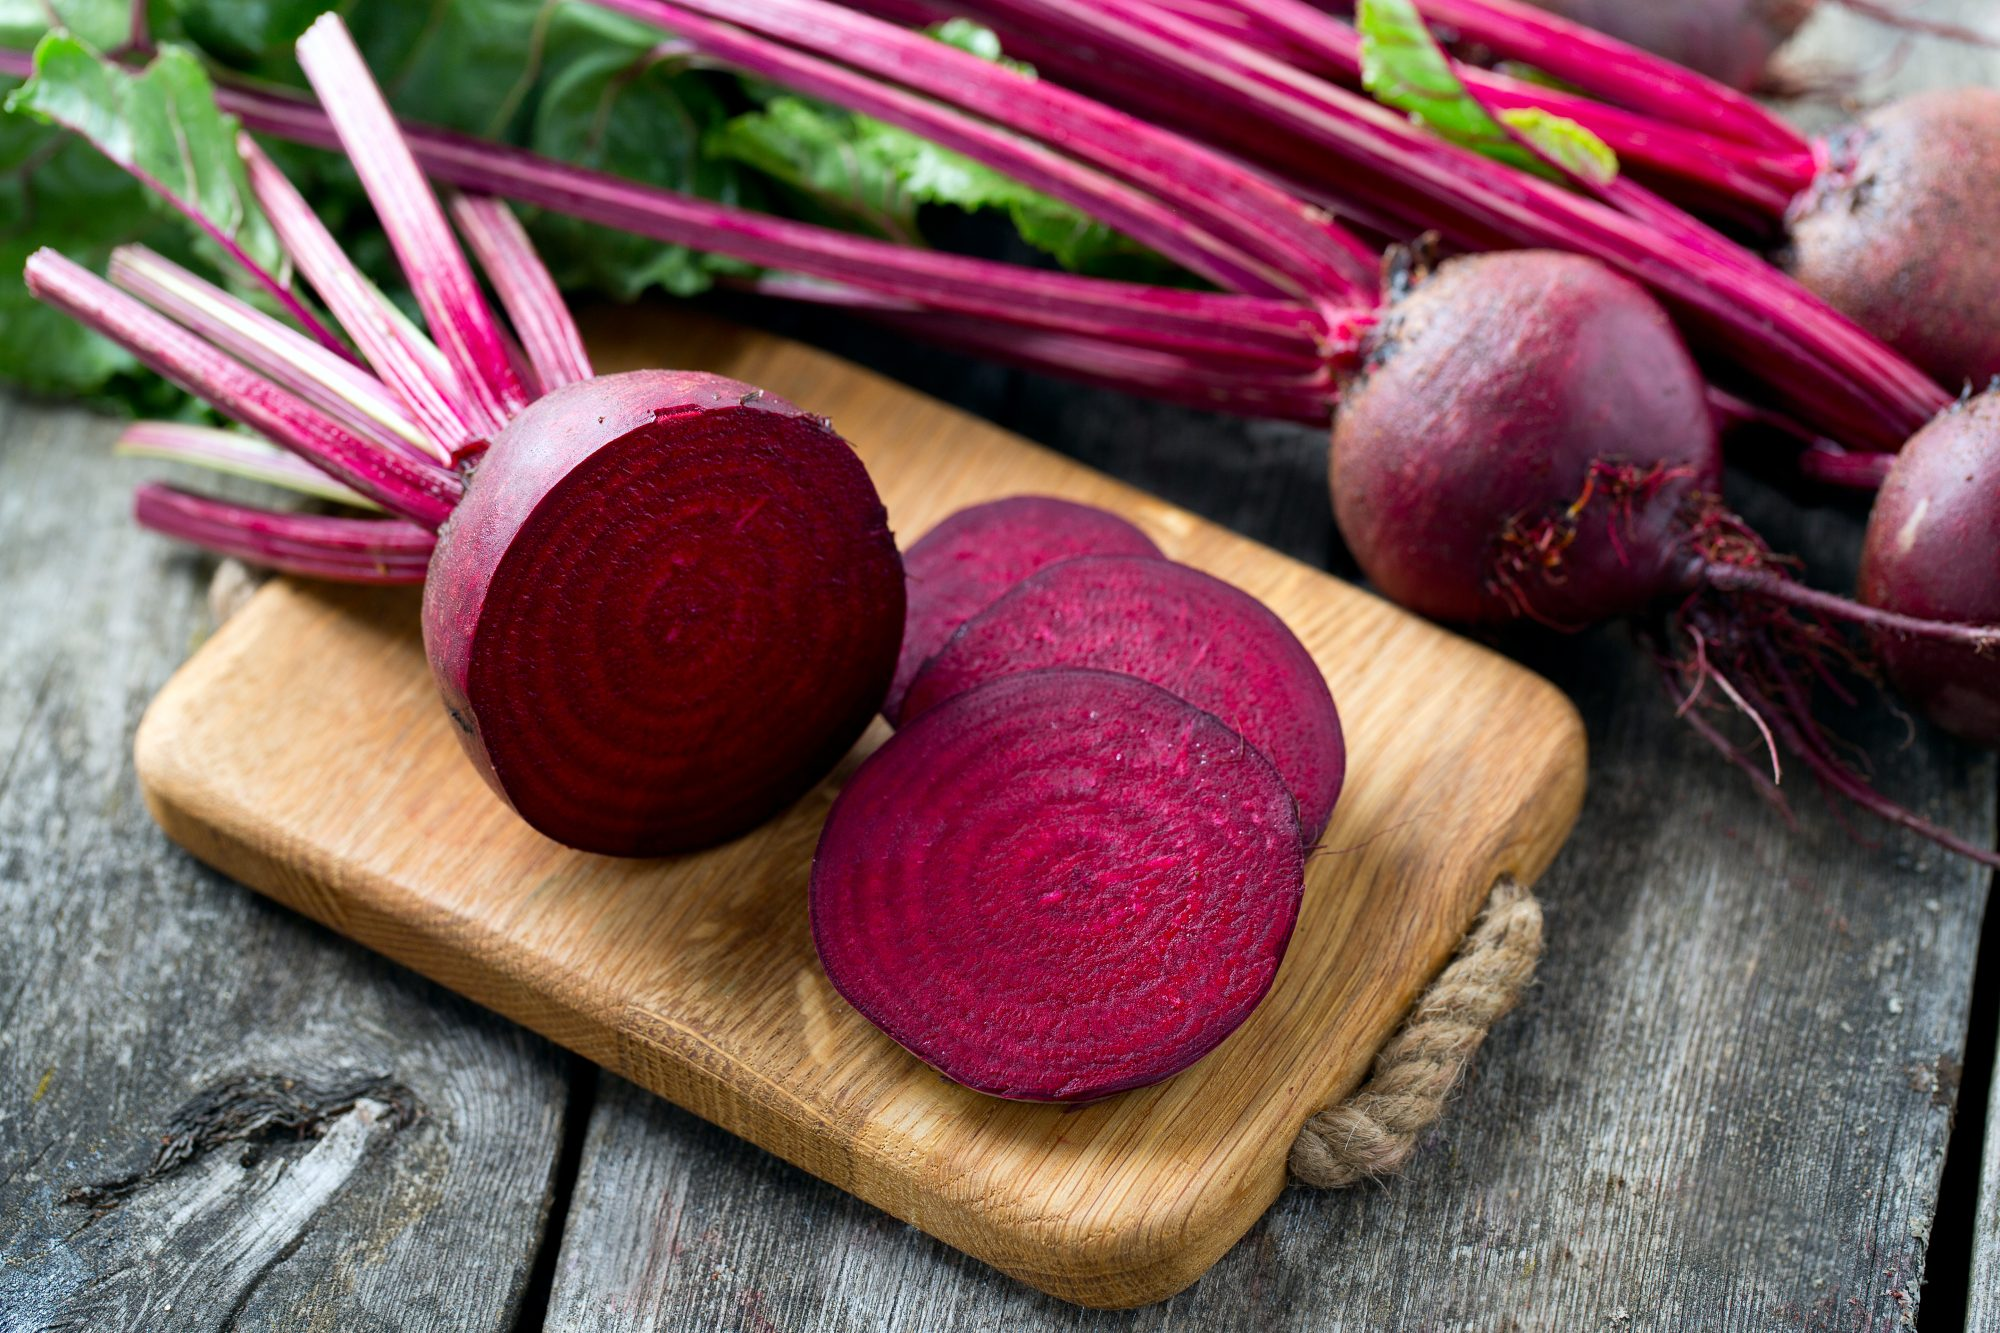 Why You Should Eat More Beets